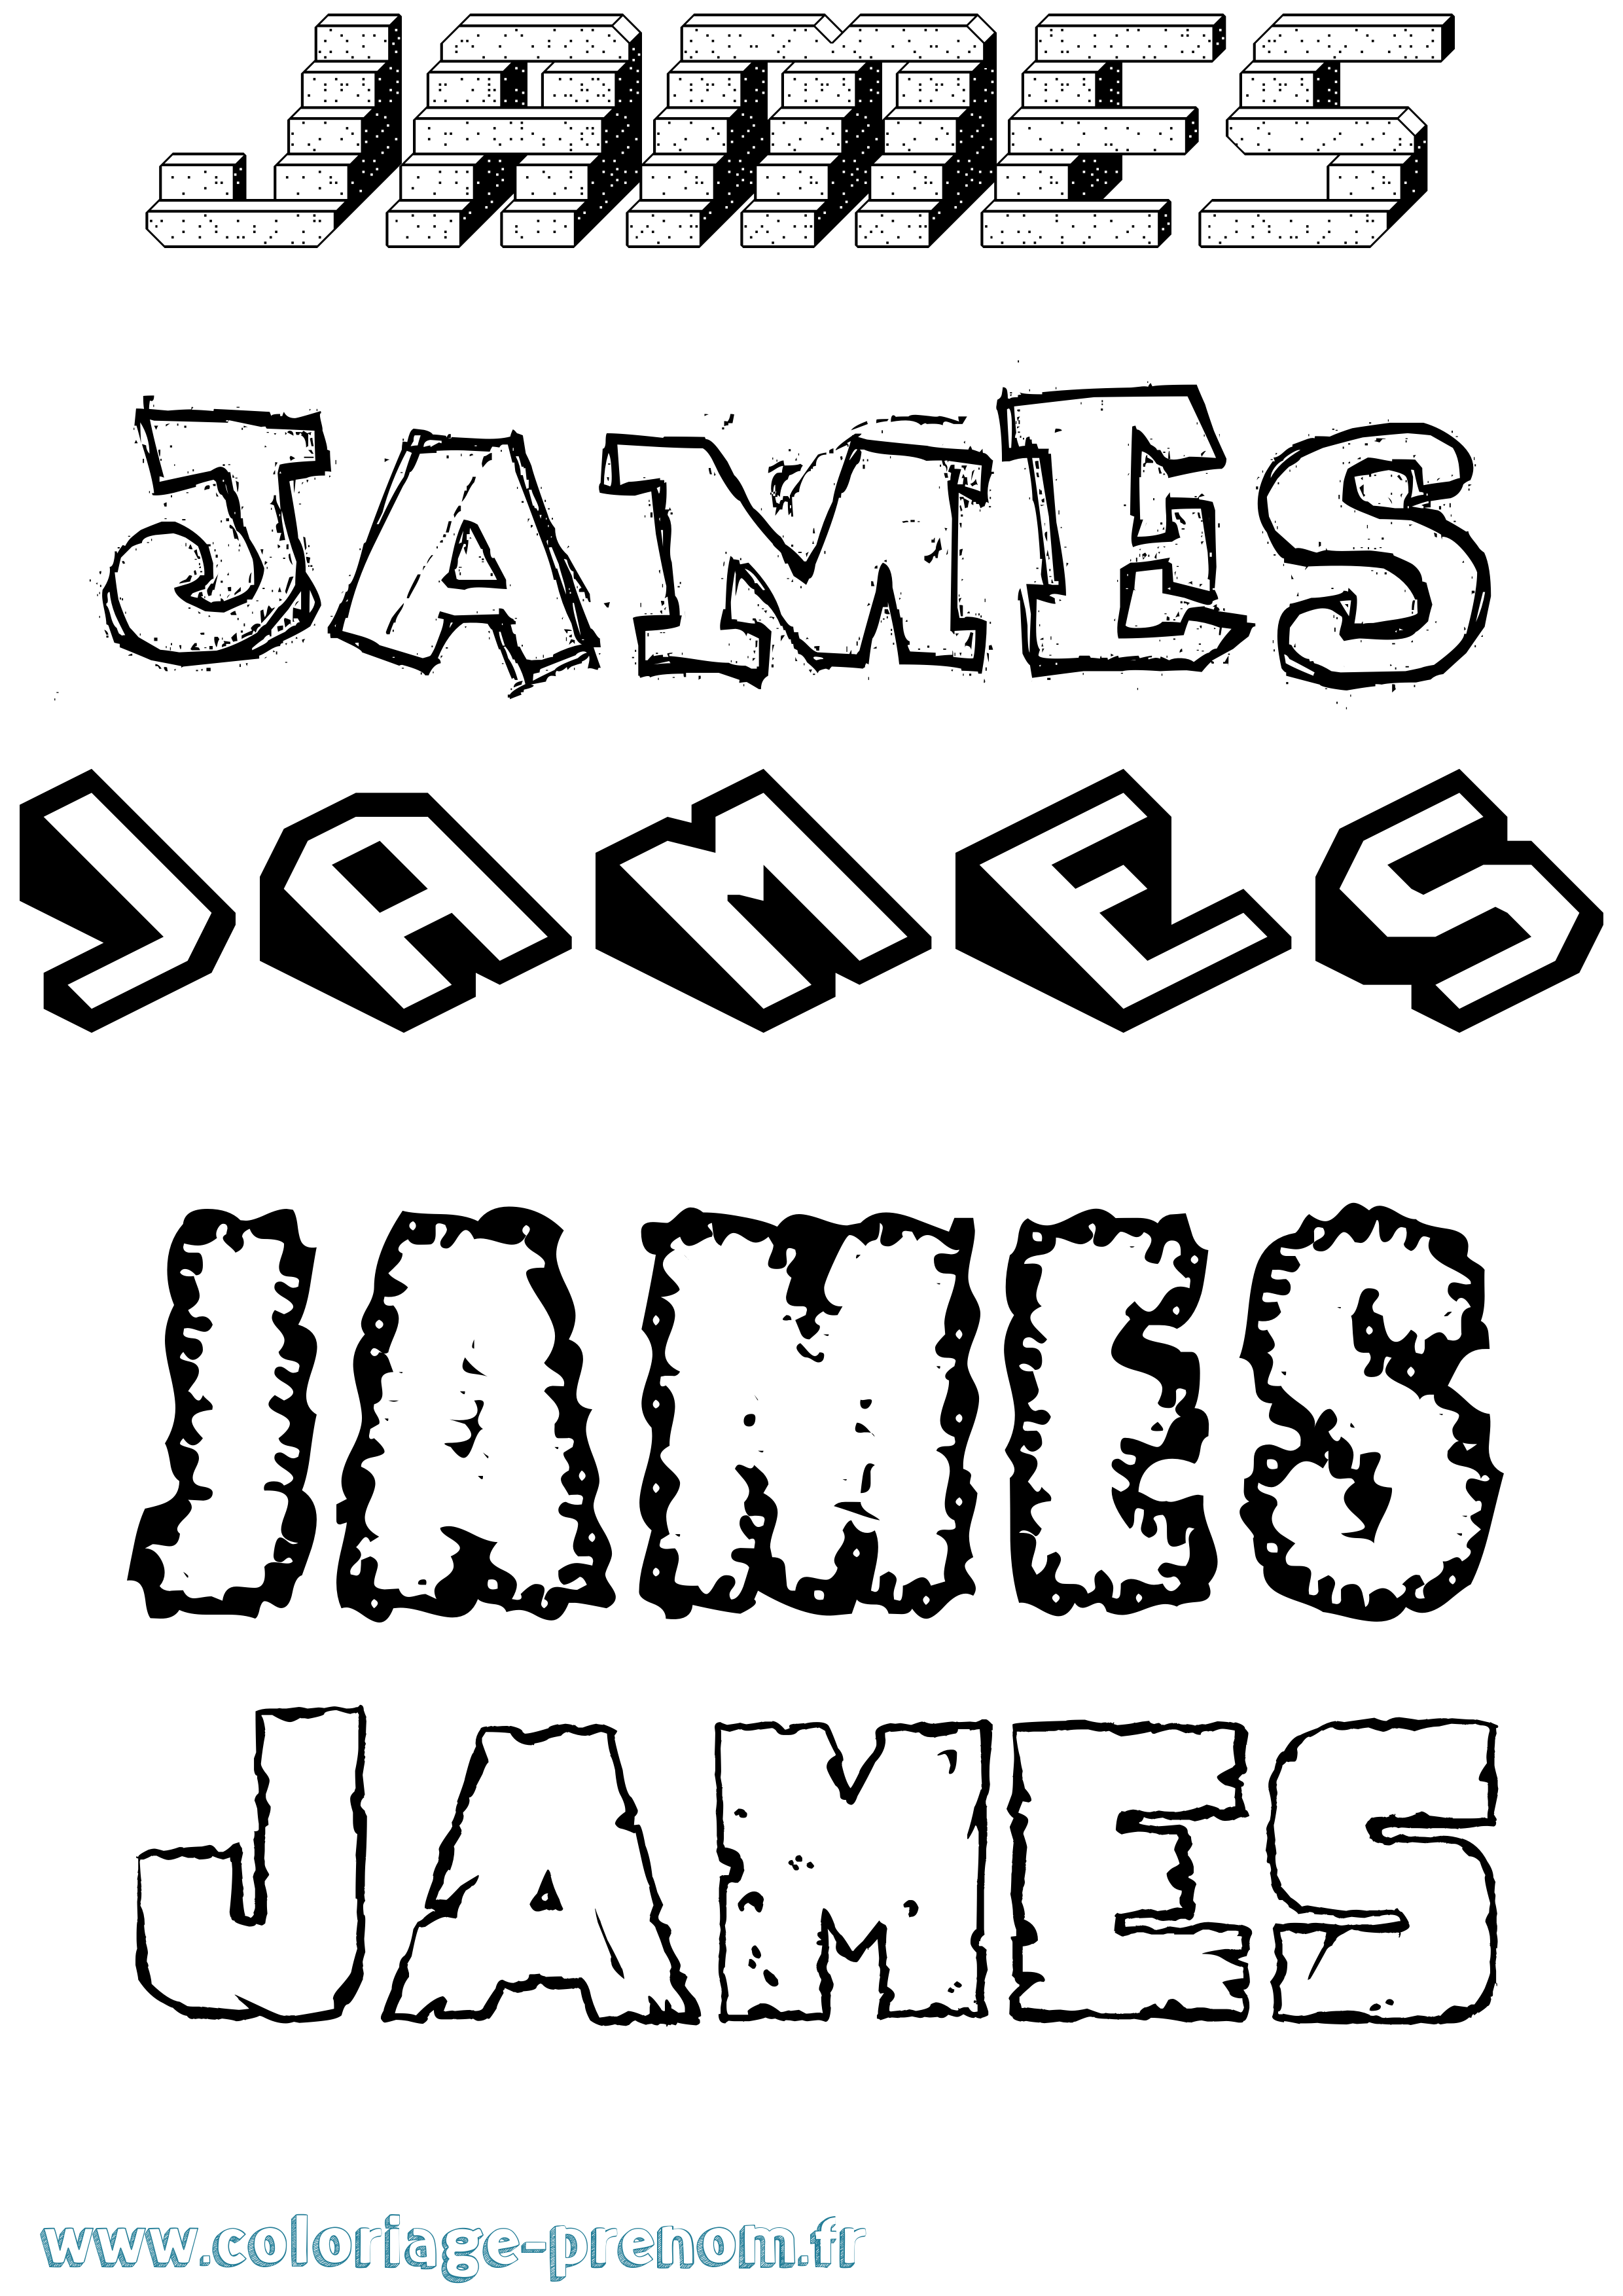 Coloriage prénom James